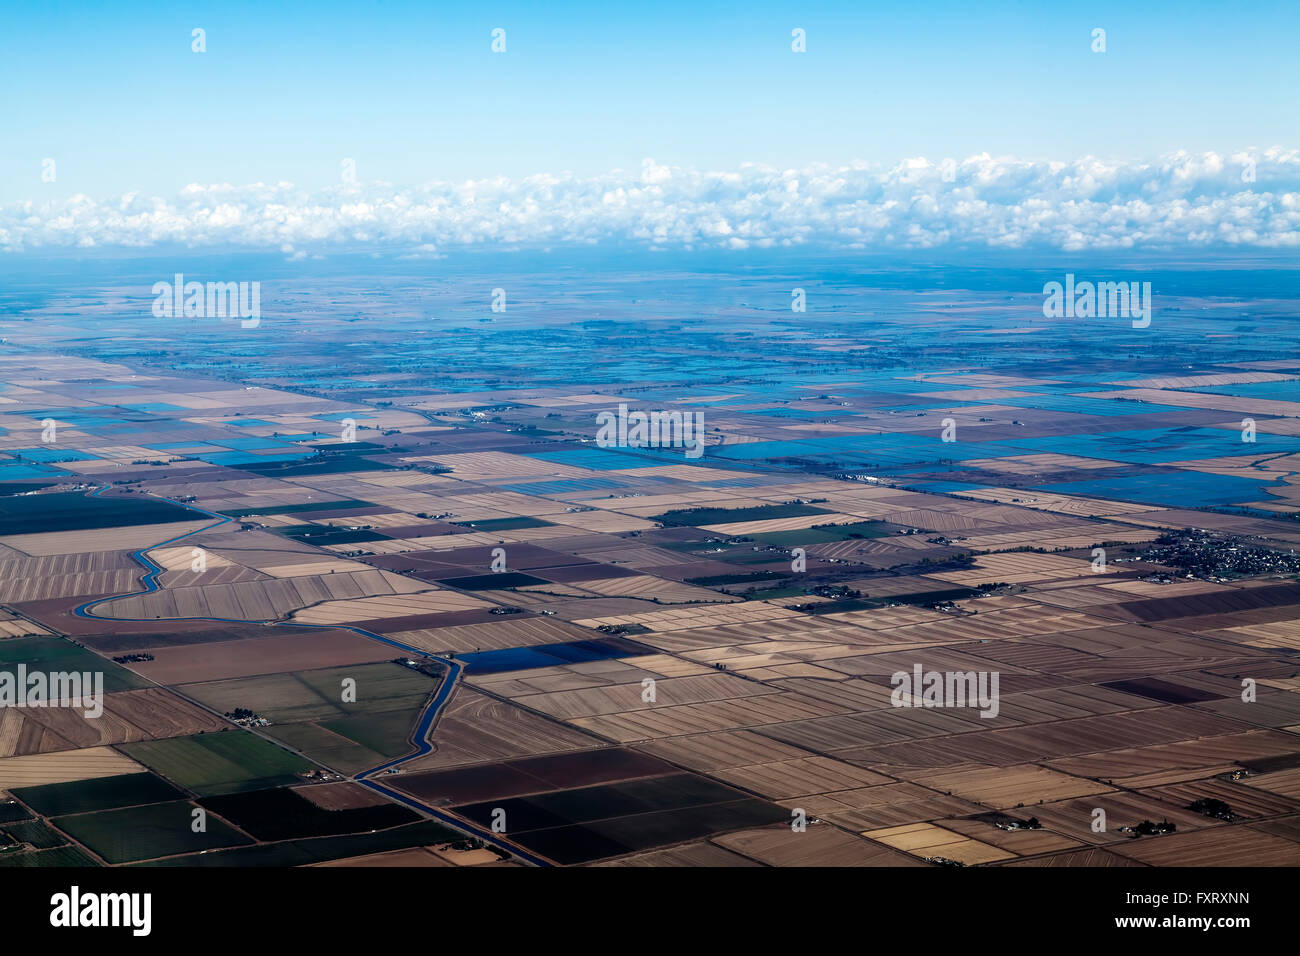 Aerial View Farm Land Irrigation Canals Water Northern California - Stock Image